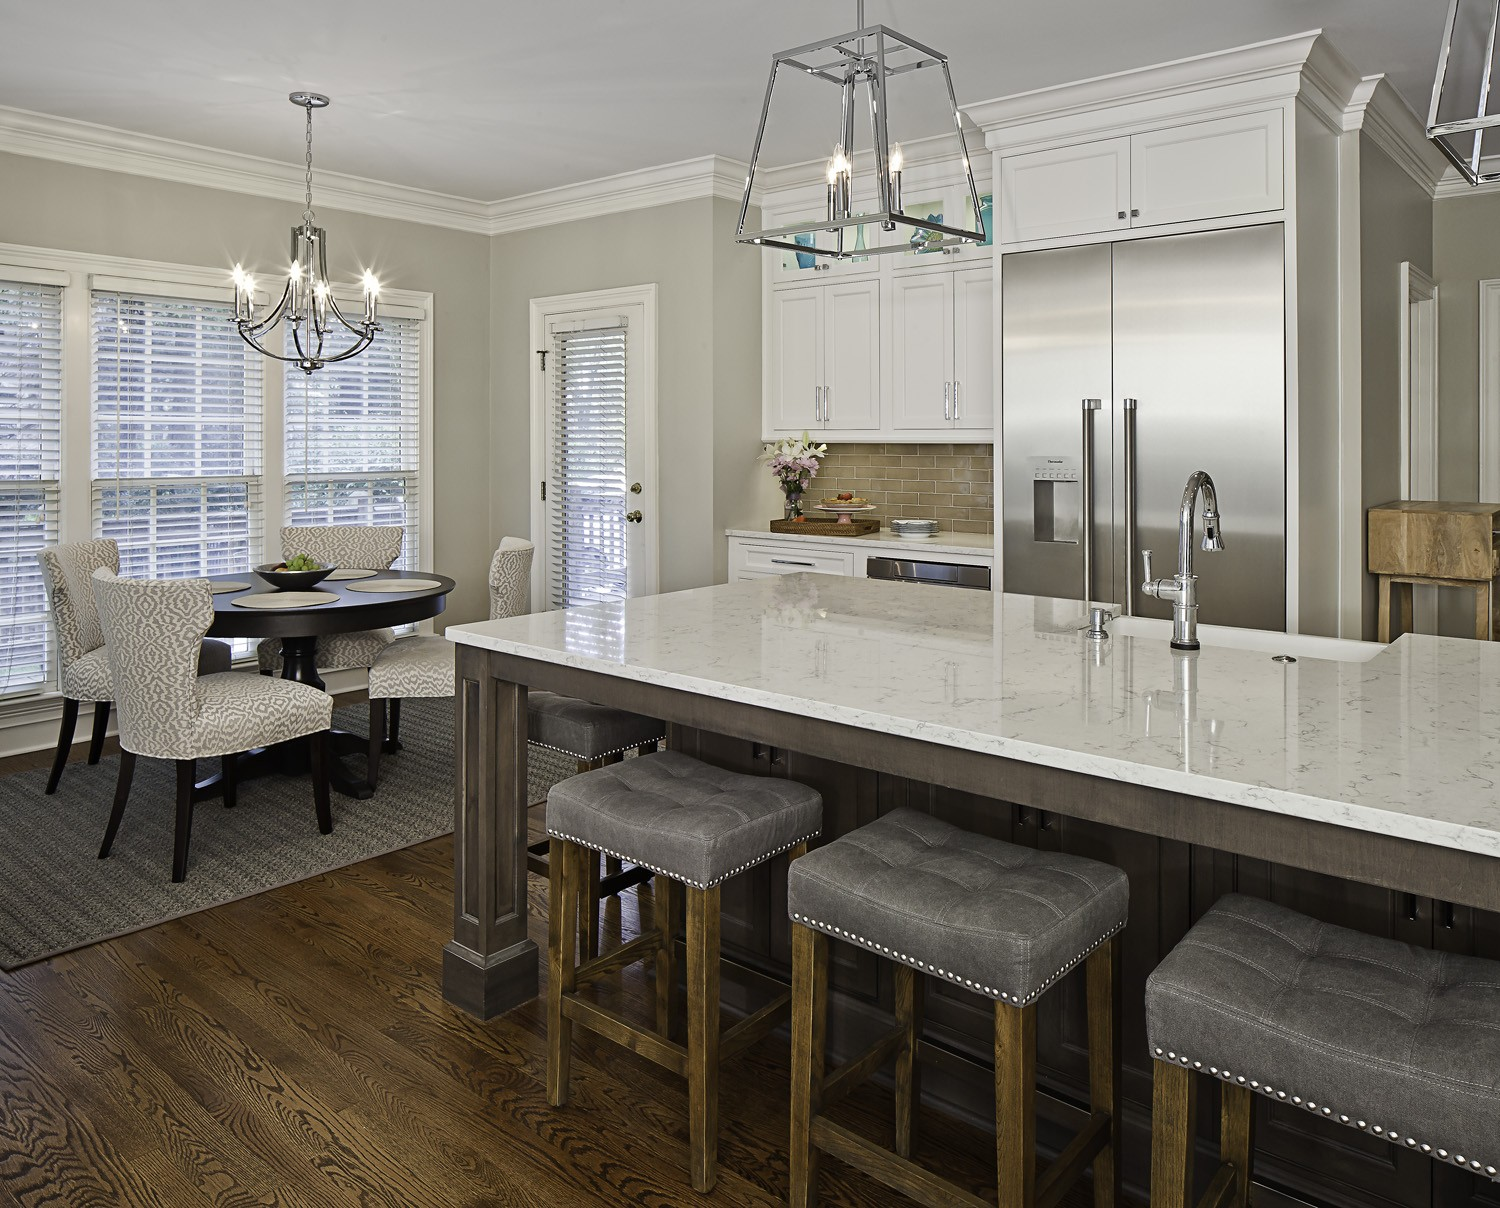 White quartz countertops look similar to marble, without the maintenance